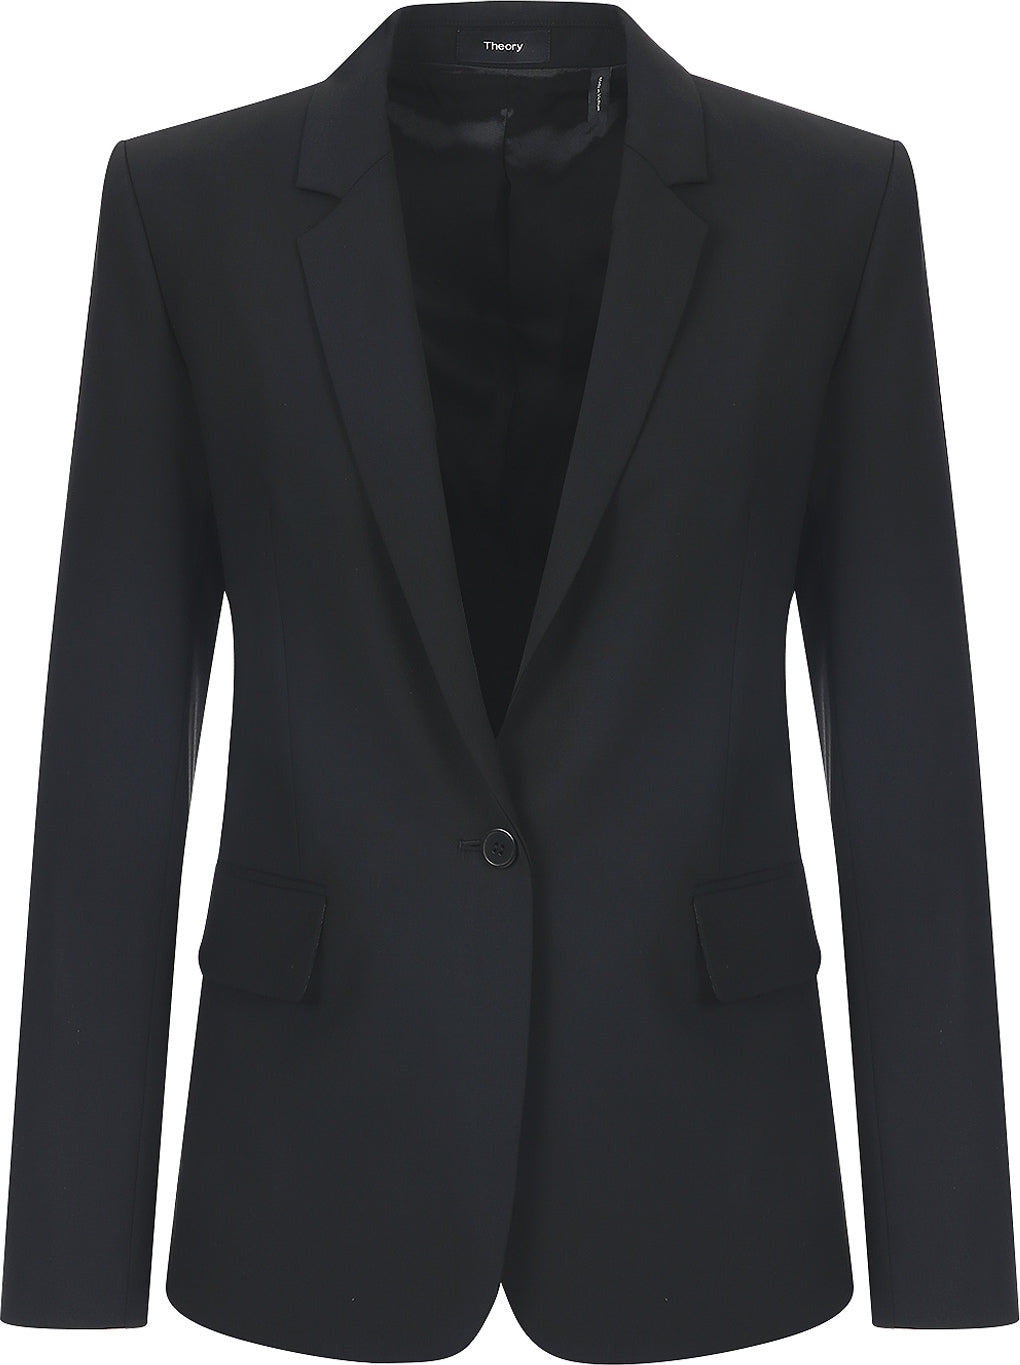 Theory - Essential black tailored suit blazer jacket